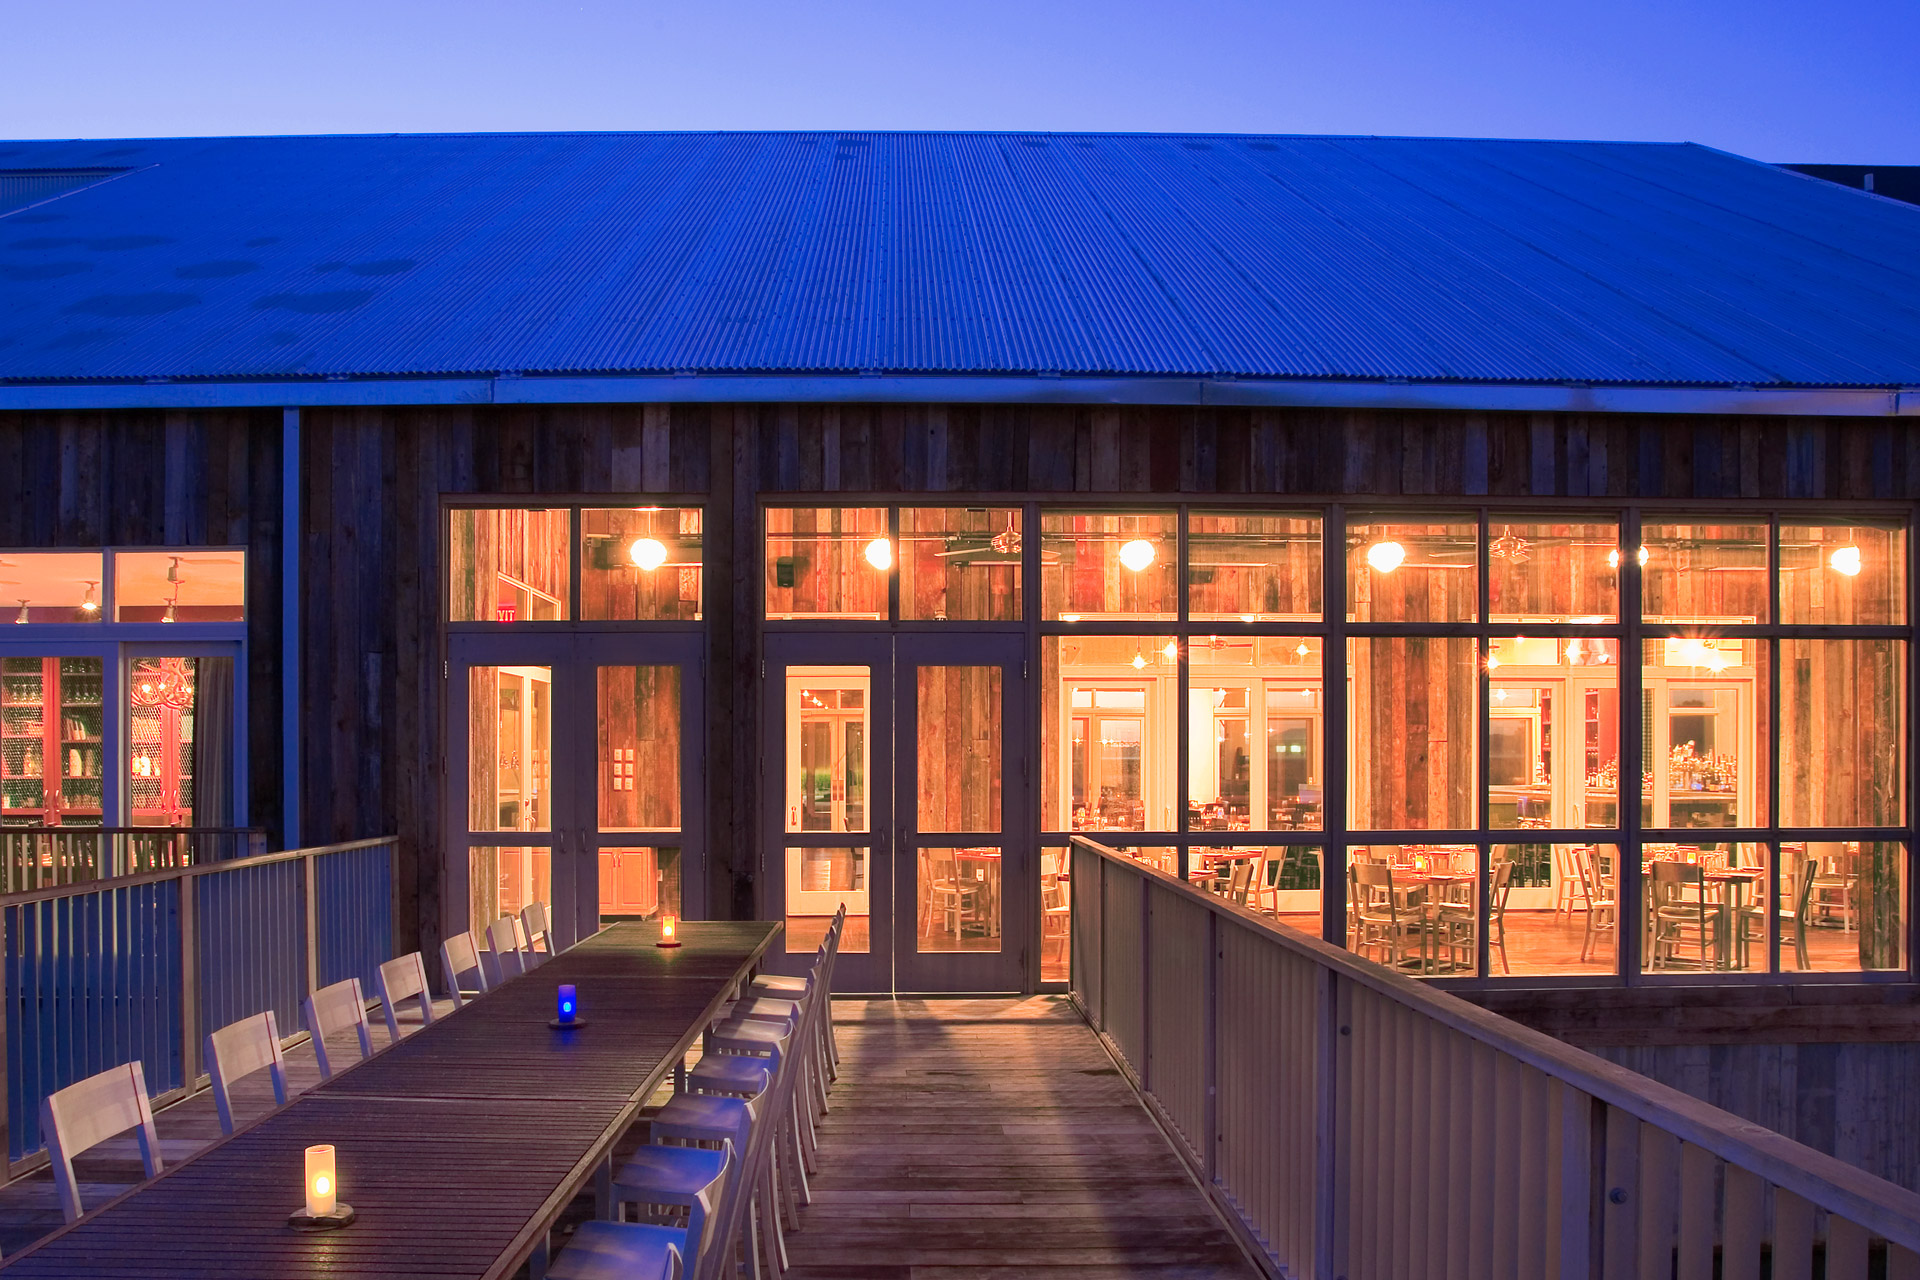 Firefly Grill restaurant architecture